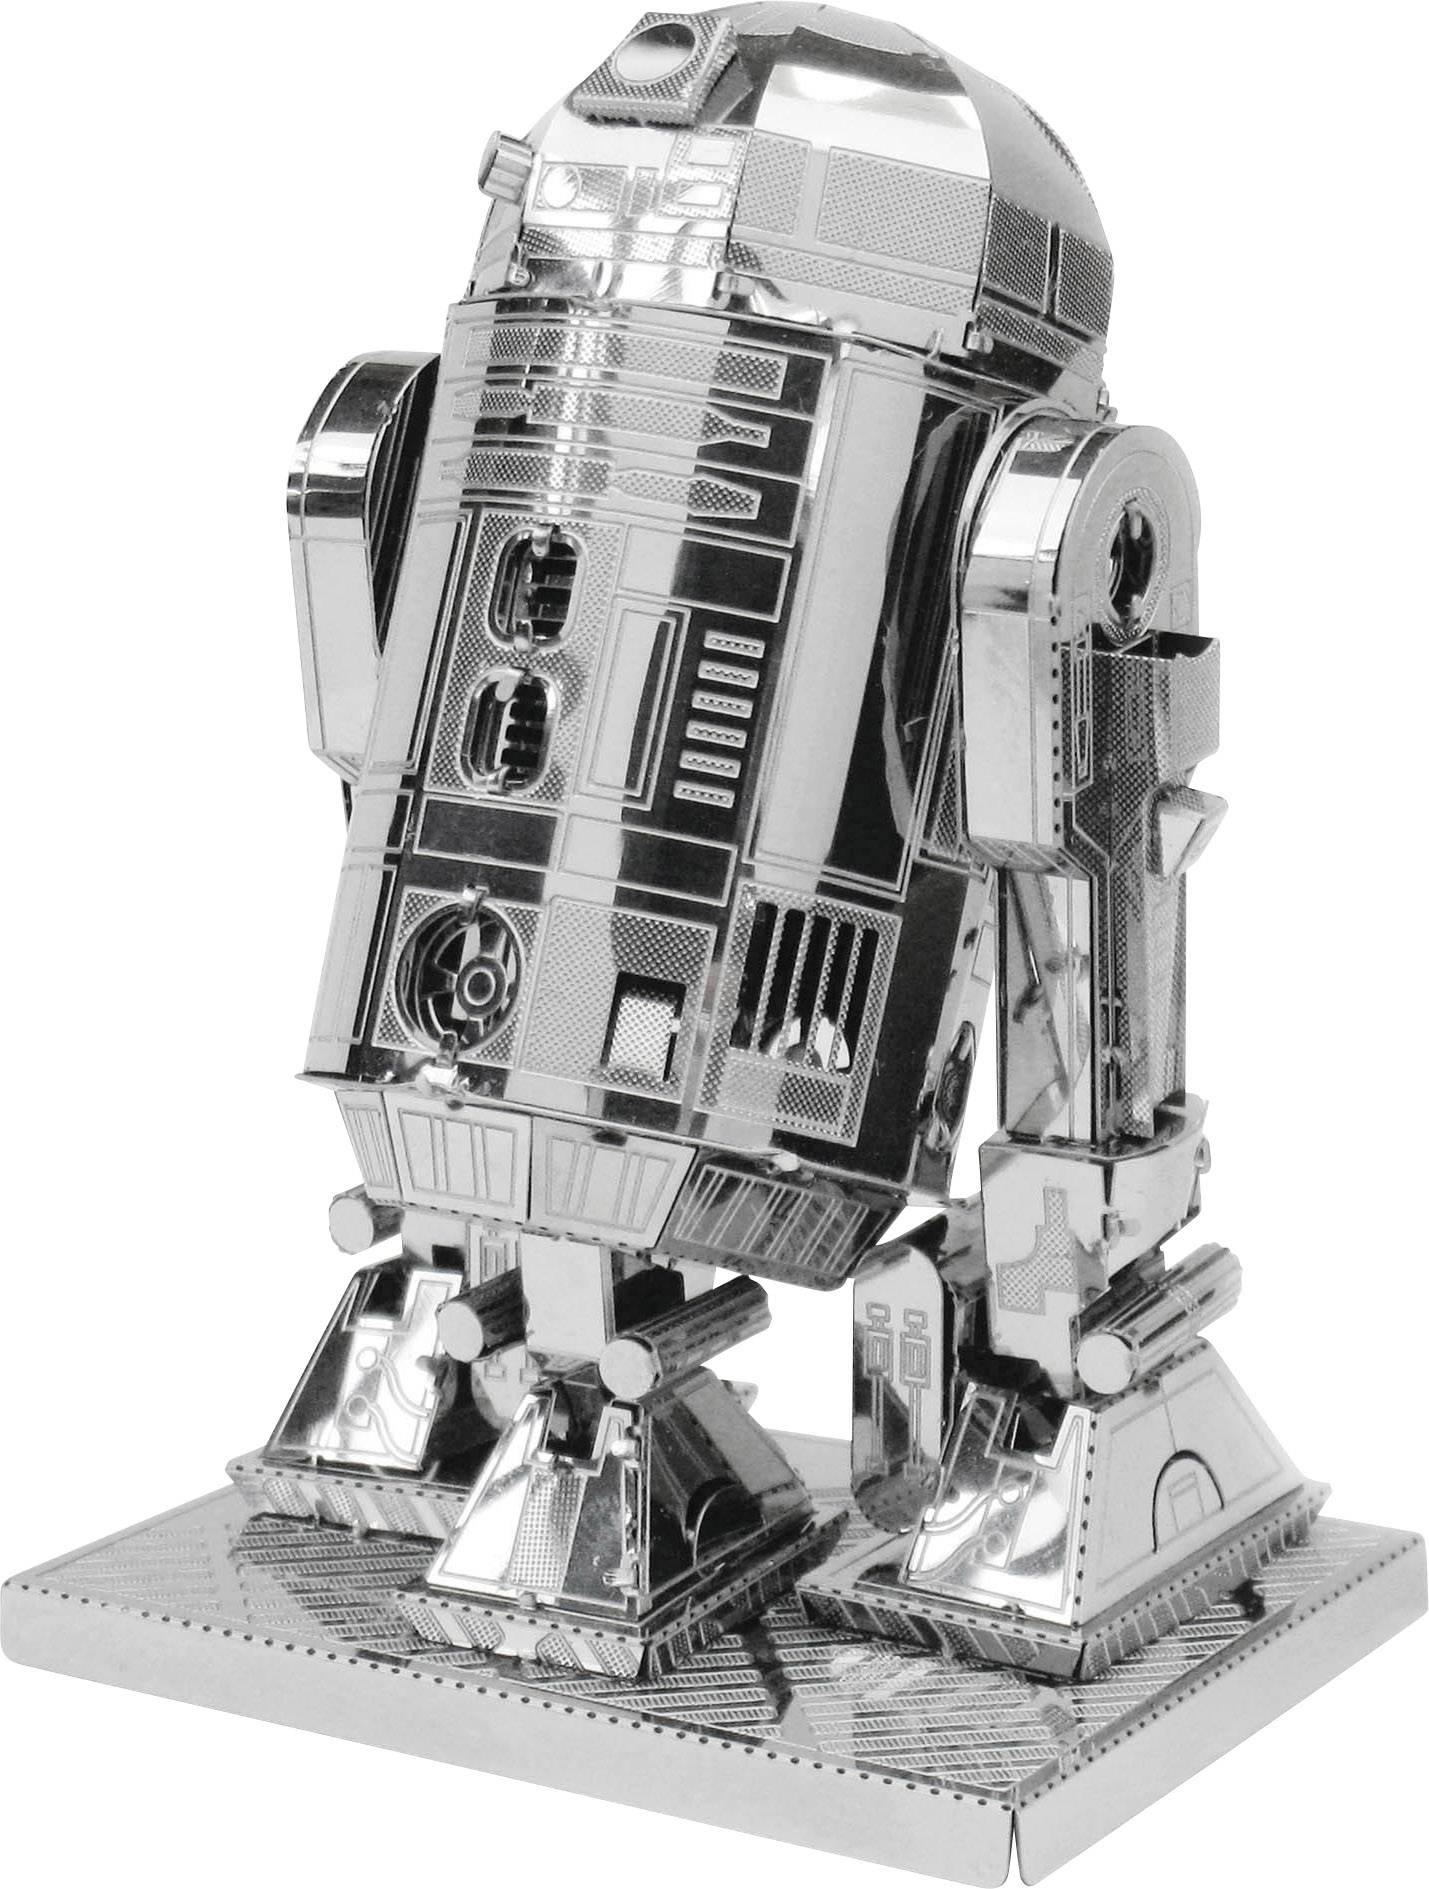 Stavebnica Metal Earth Star Wars R2-D2